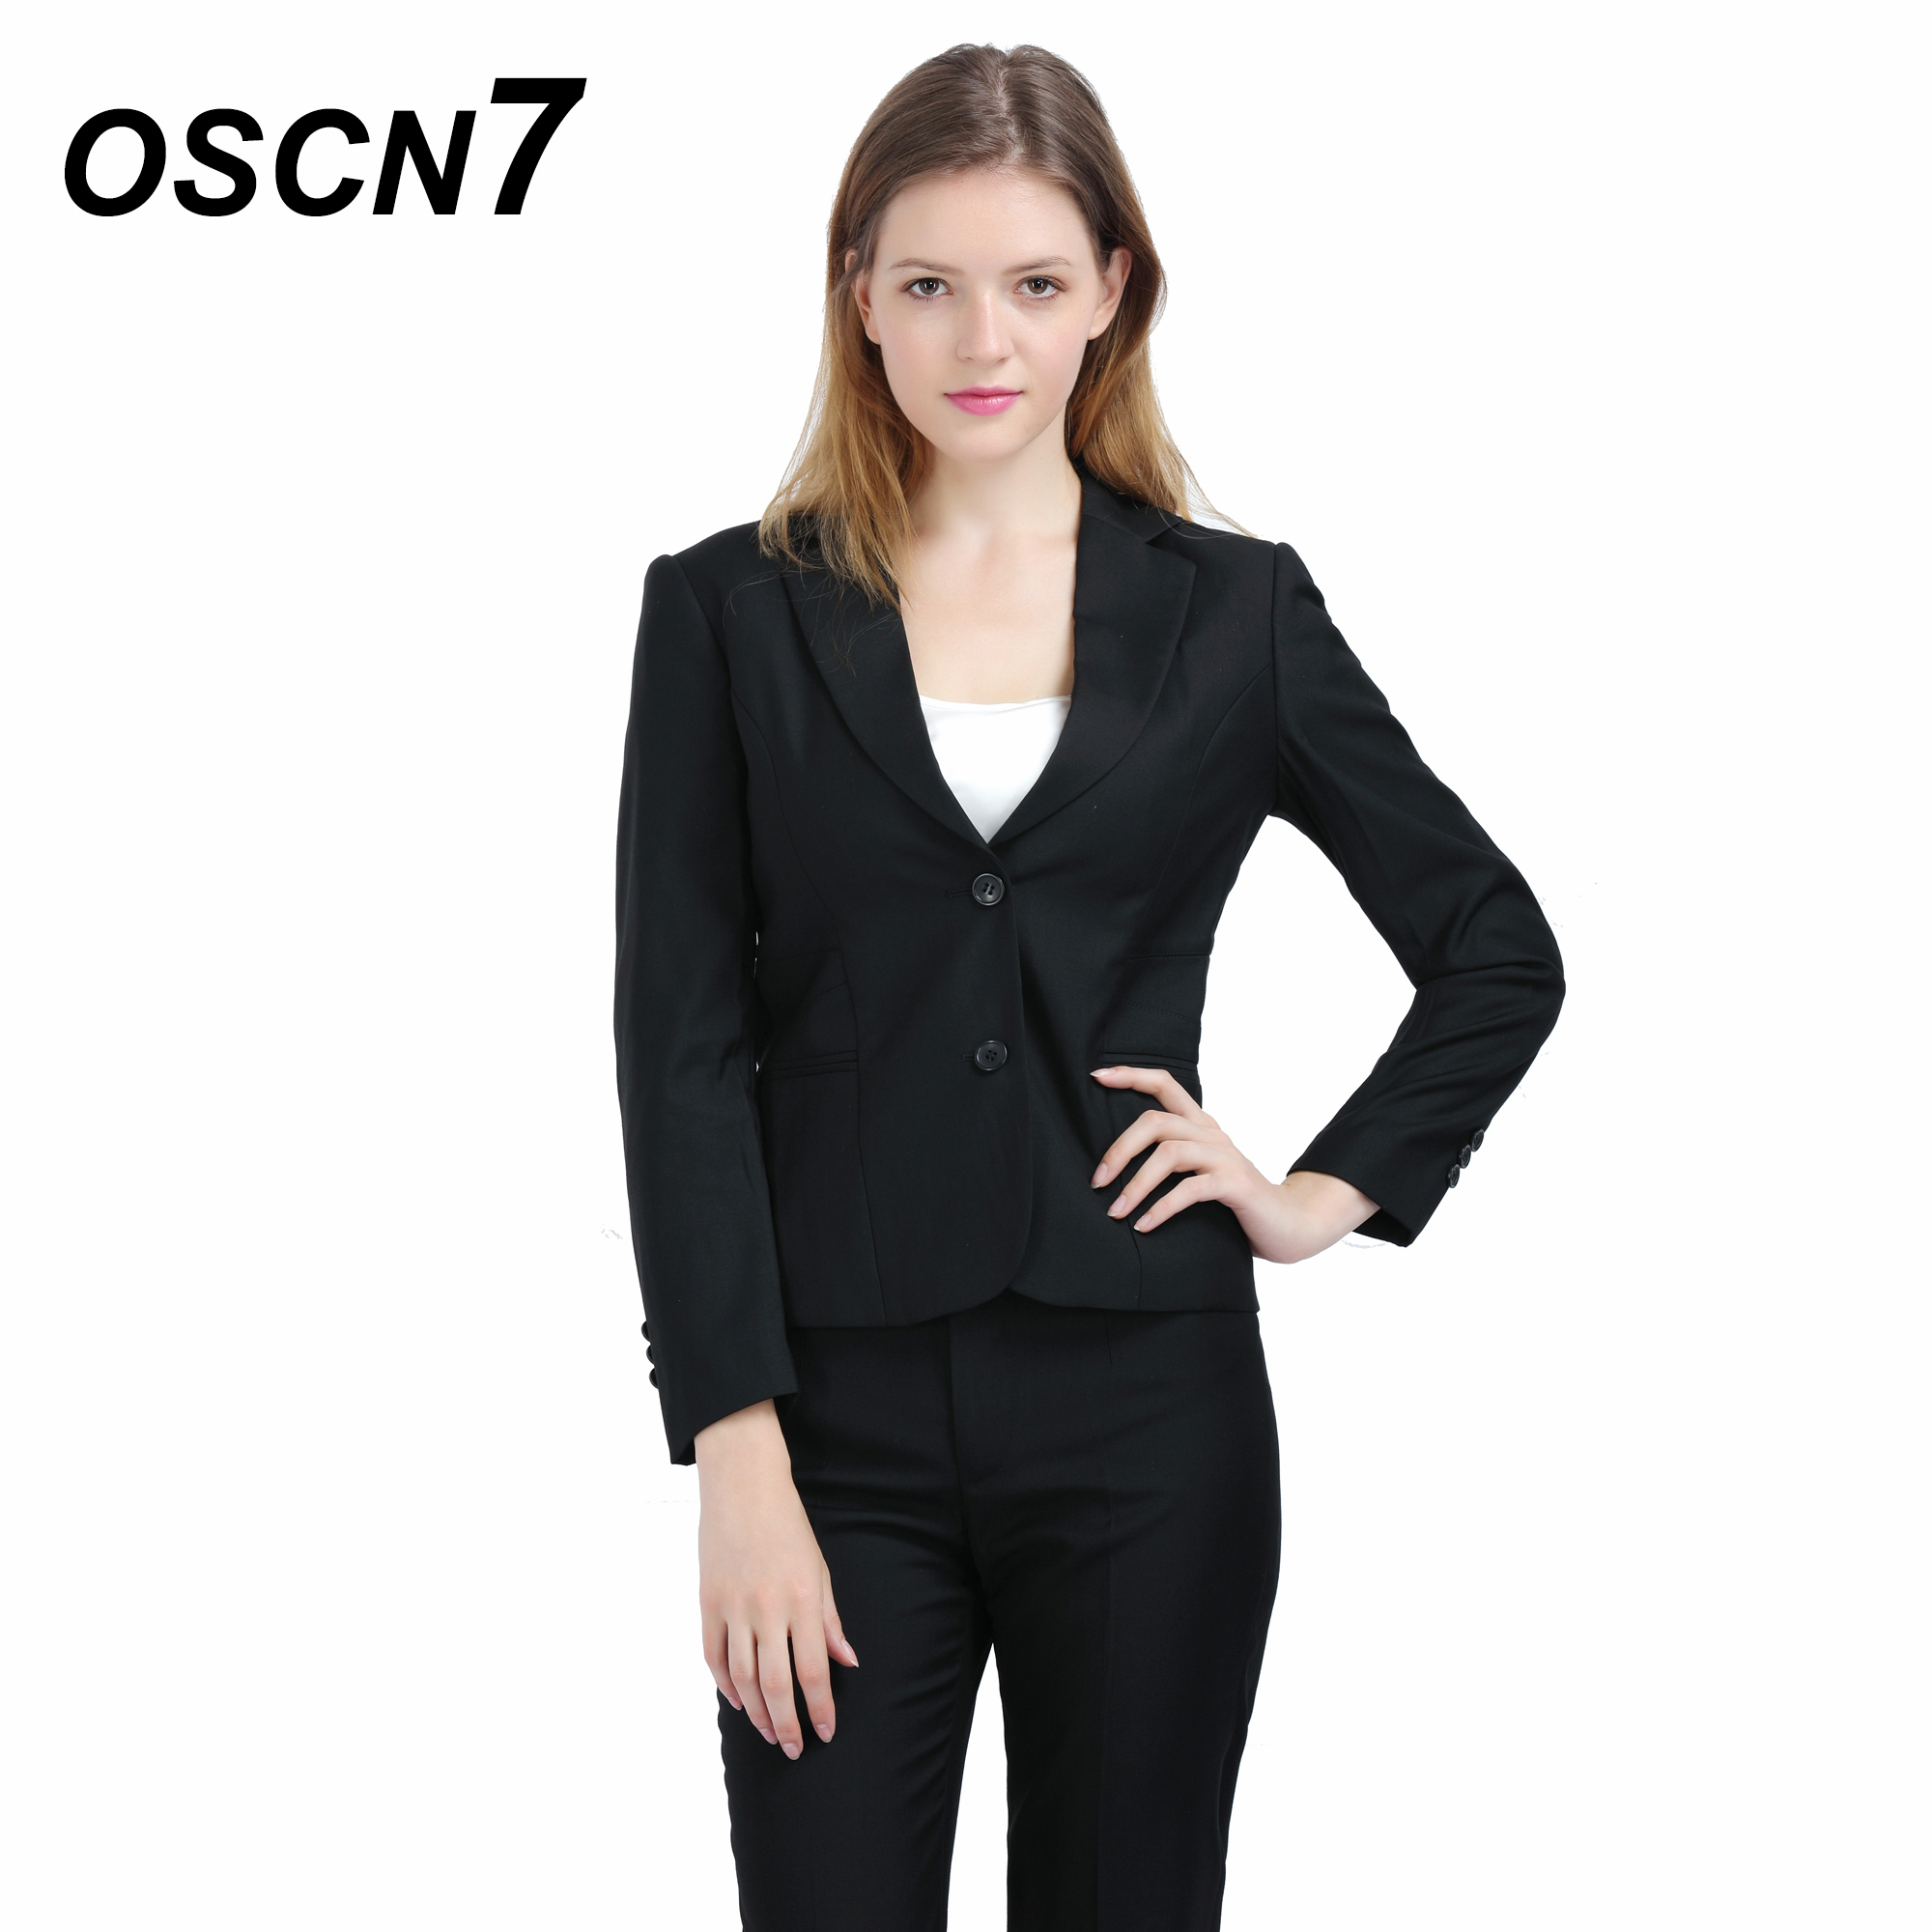 Temperate Oscn7 2pcs Black Women Suit Slim Fit Leisure Women Suits Office Sets Plus Size 2018 Classic Blazer Set 156 A Plastic Case Is Compartmentalized For Safe Storage